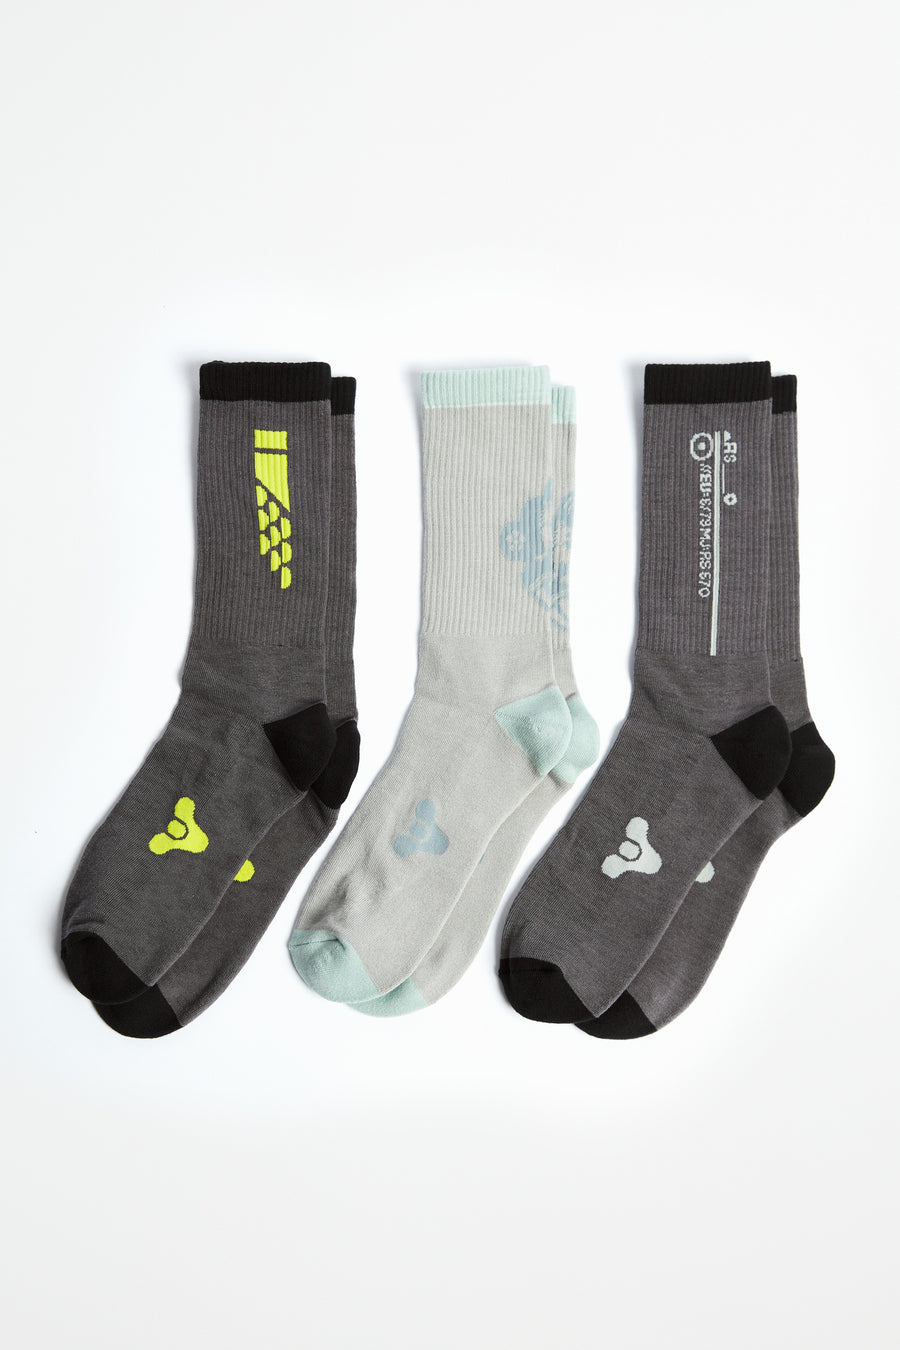 Destiny Europa Socks 3-Pack